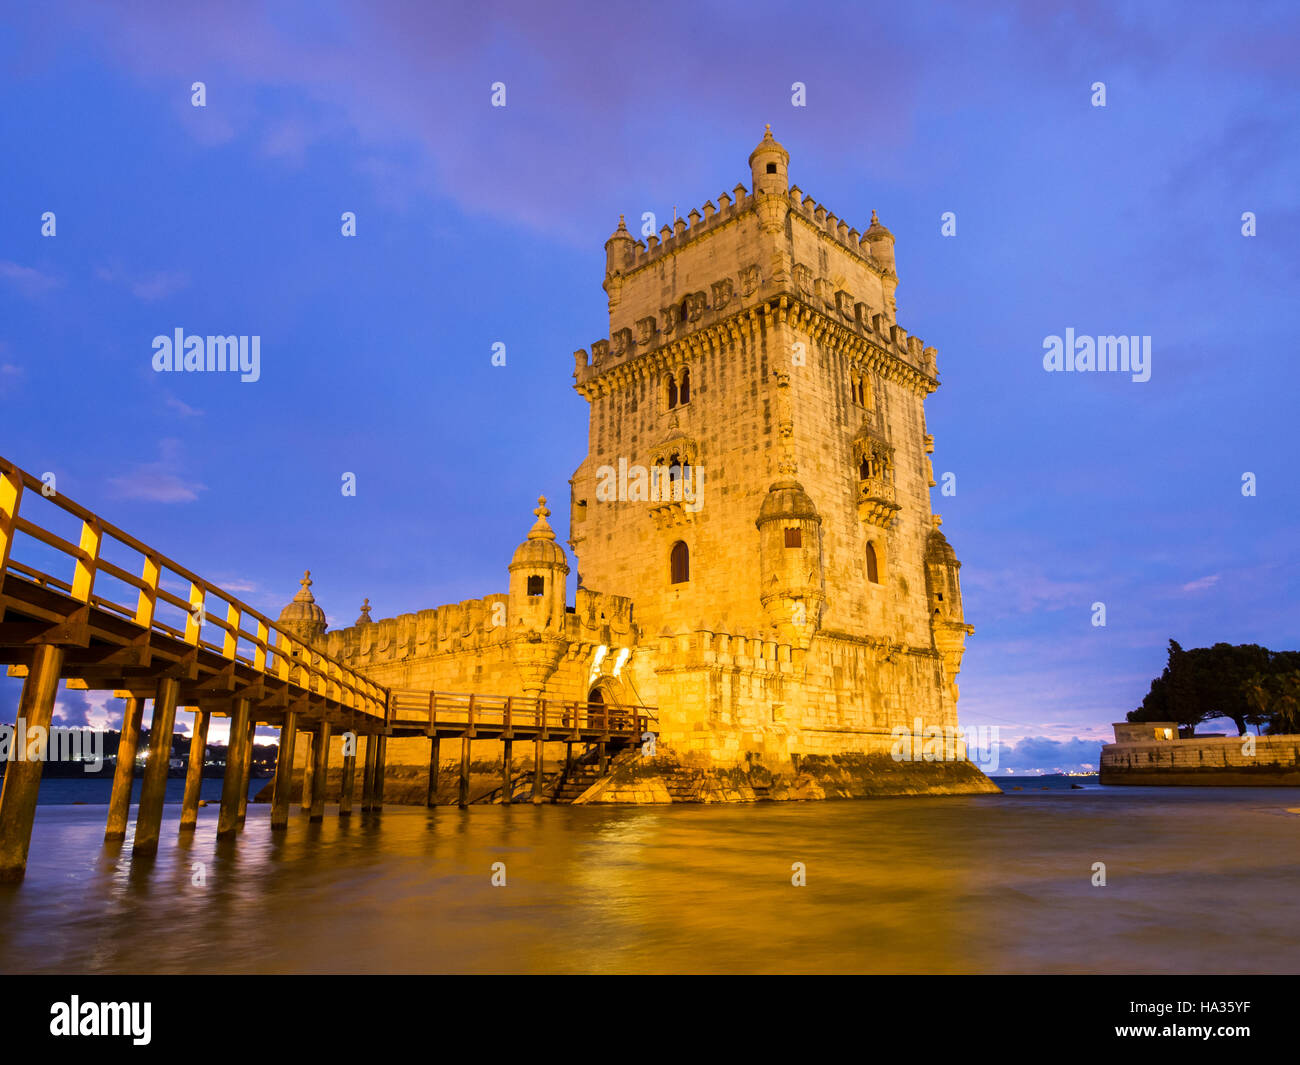 Torre de Belem on the bank of Tagus river in Lisbon, Portugal, at night. - Stock Image